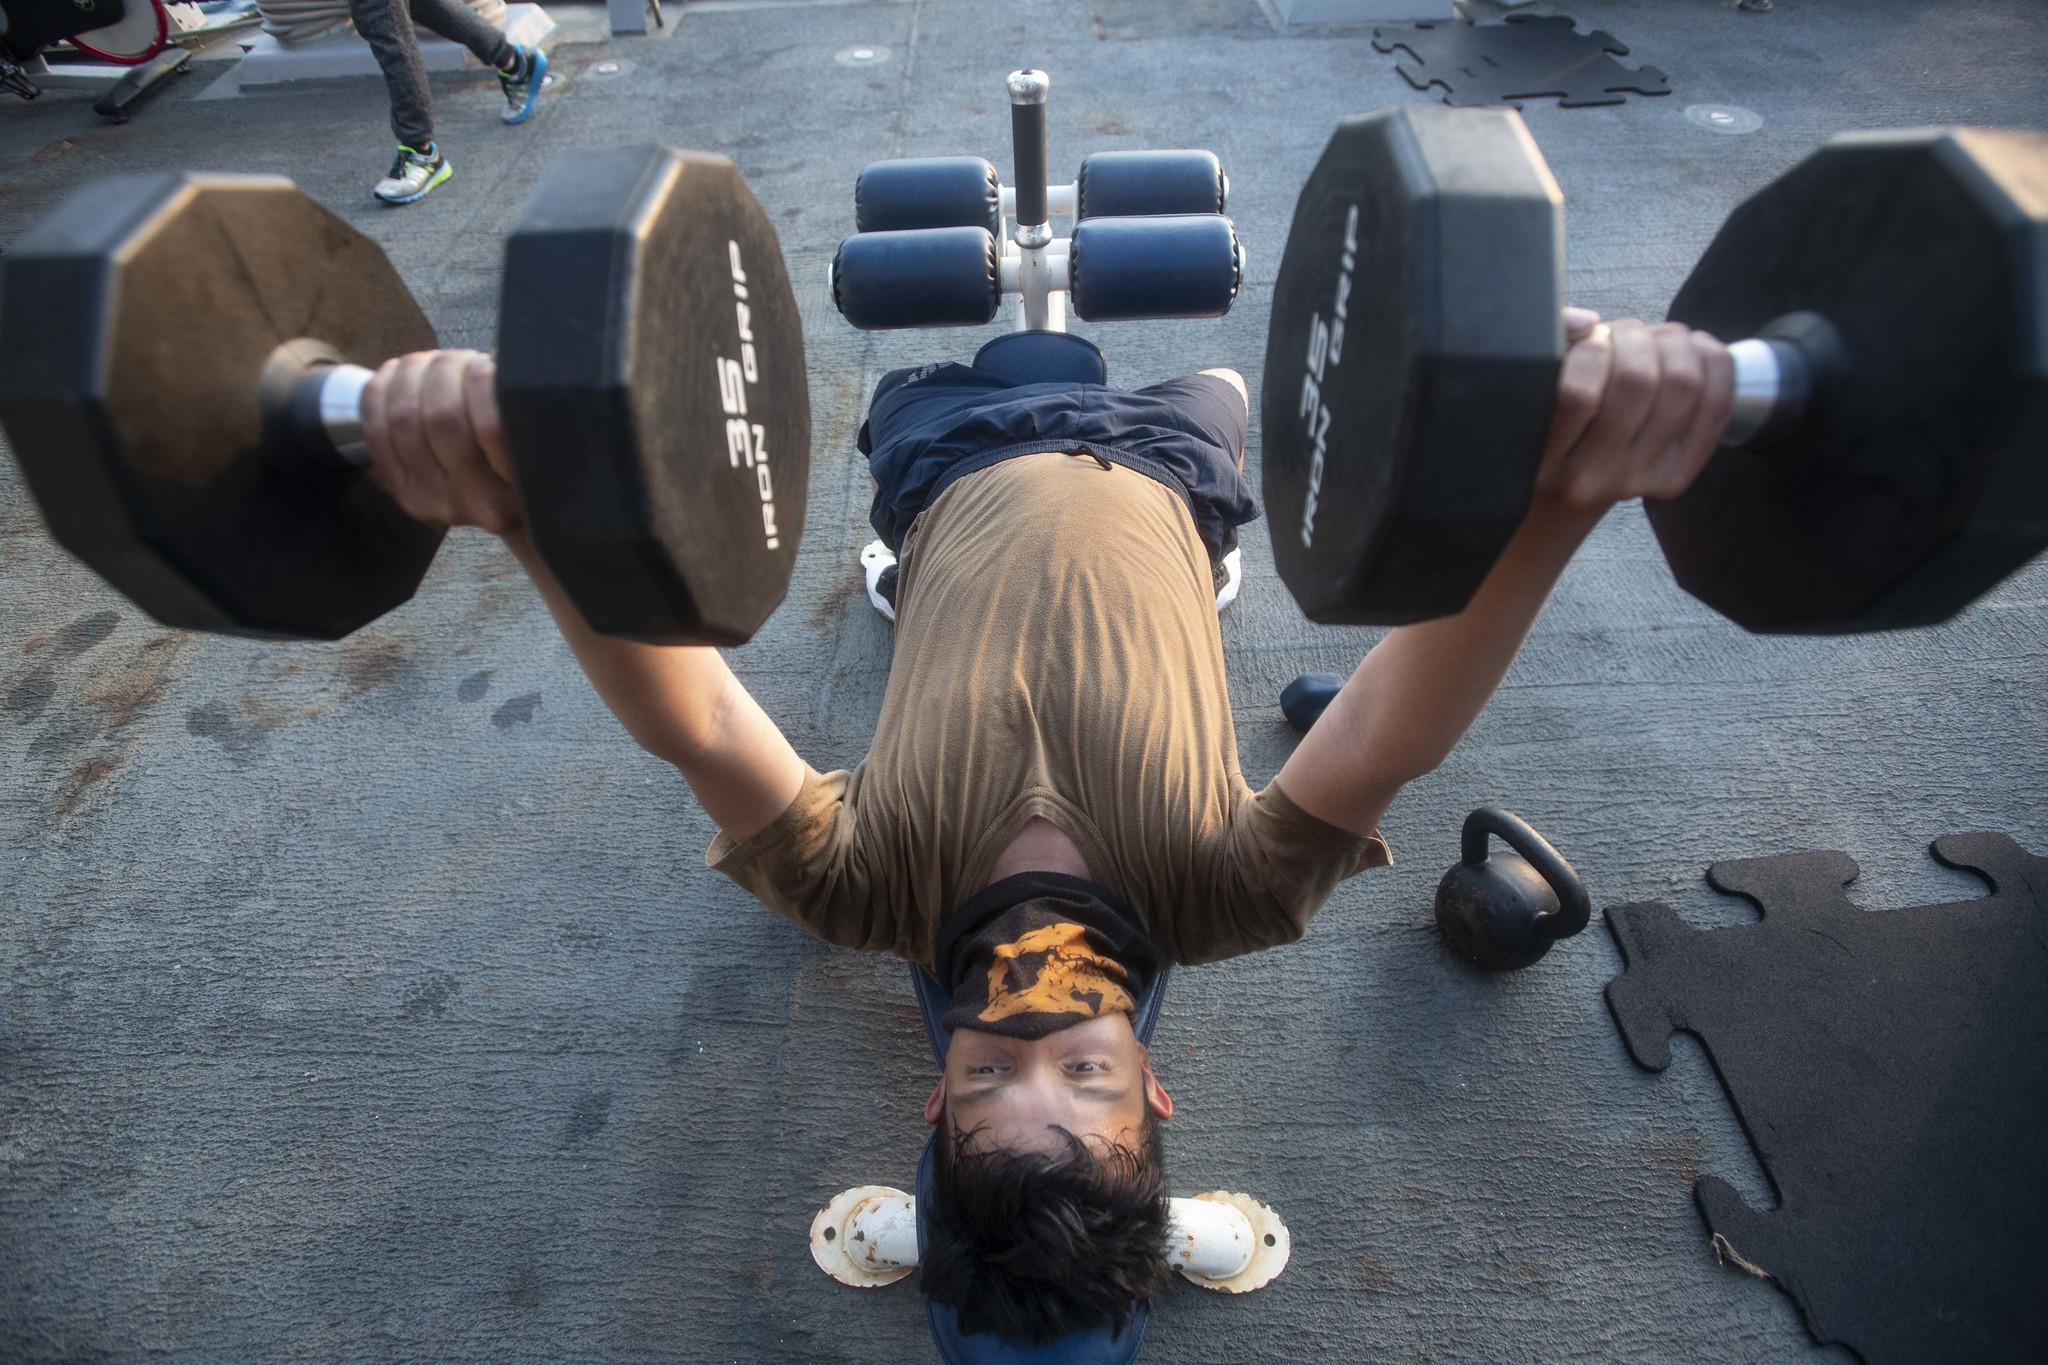 Boatswain's Mate Seaman Apprentice Esau Arellano, assigned to the Arleigh Burke-class guided-missile destroyer USS Ralph Johnson (DDG 114), engages in physical fitness while underway on Aug. 4, 2020, in the Arabian Gulf. (MC3 Anthony Collier/Navy)